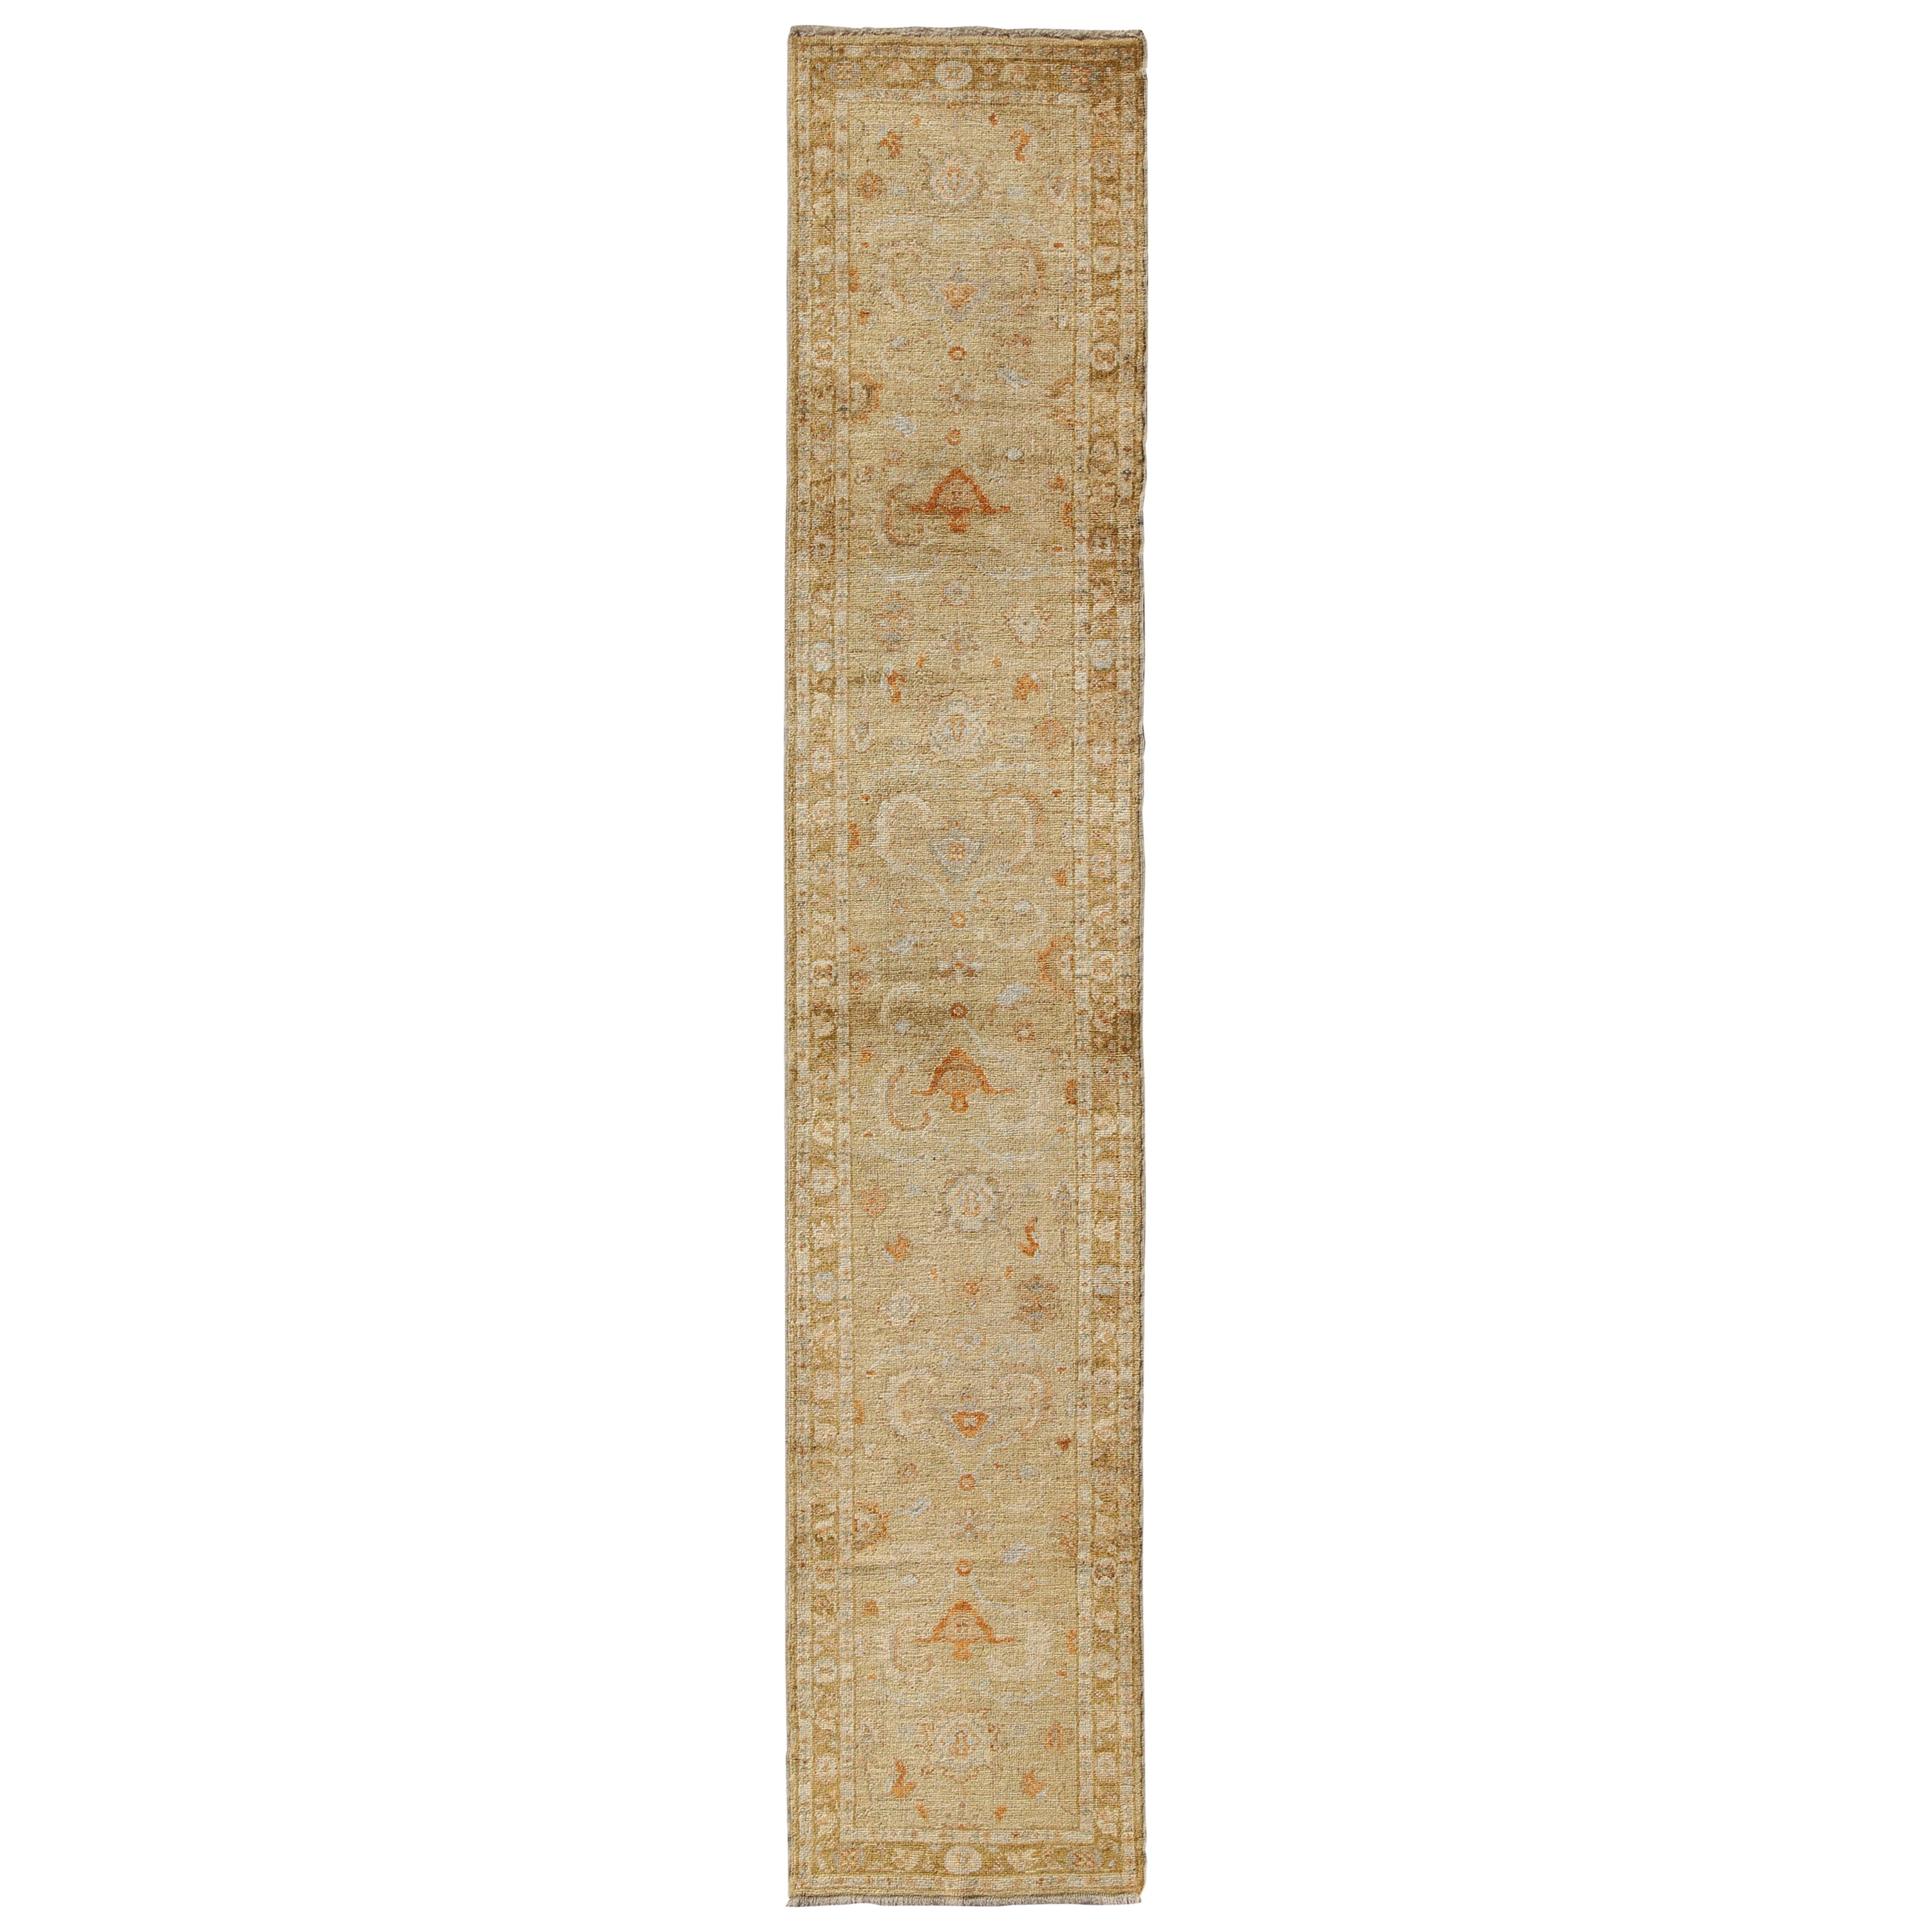 Angora Oushak Turkish Runner with Classic Design in Gold Background